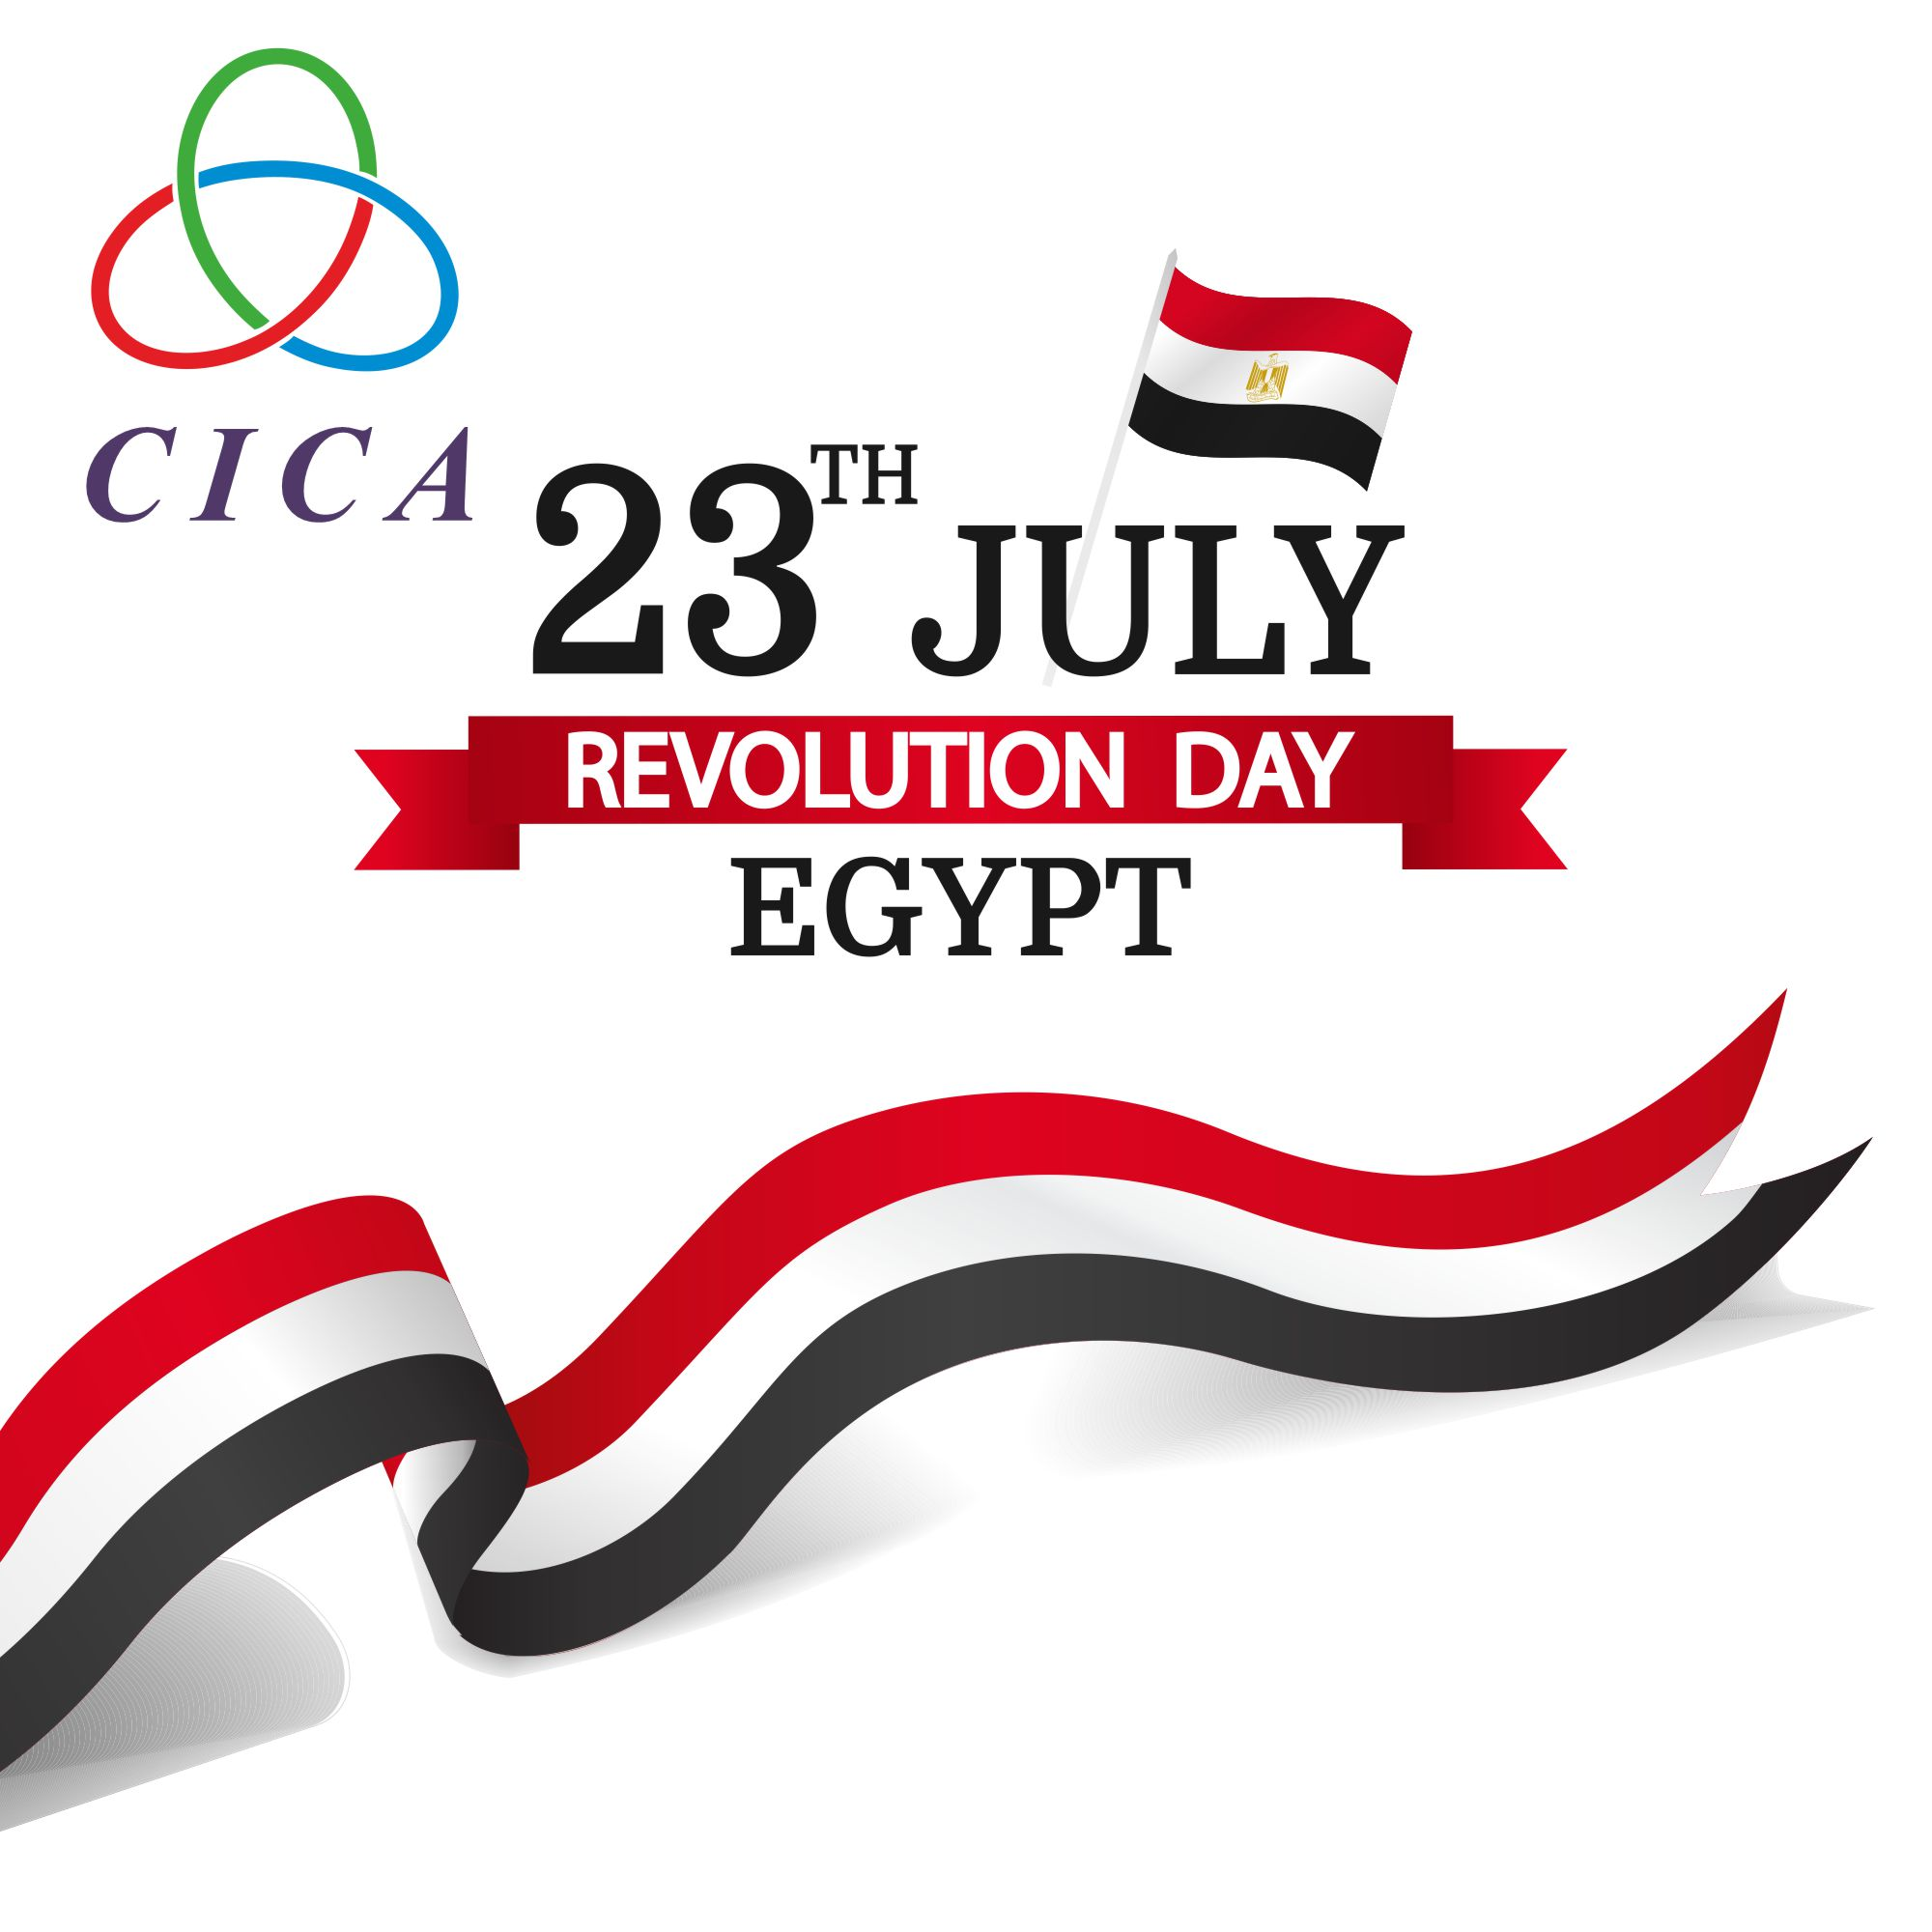 CICA Secretariat extends sincere congratulations to Egypt on the occasion of the RevolutionDay!